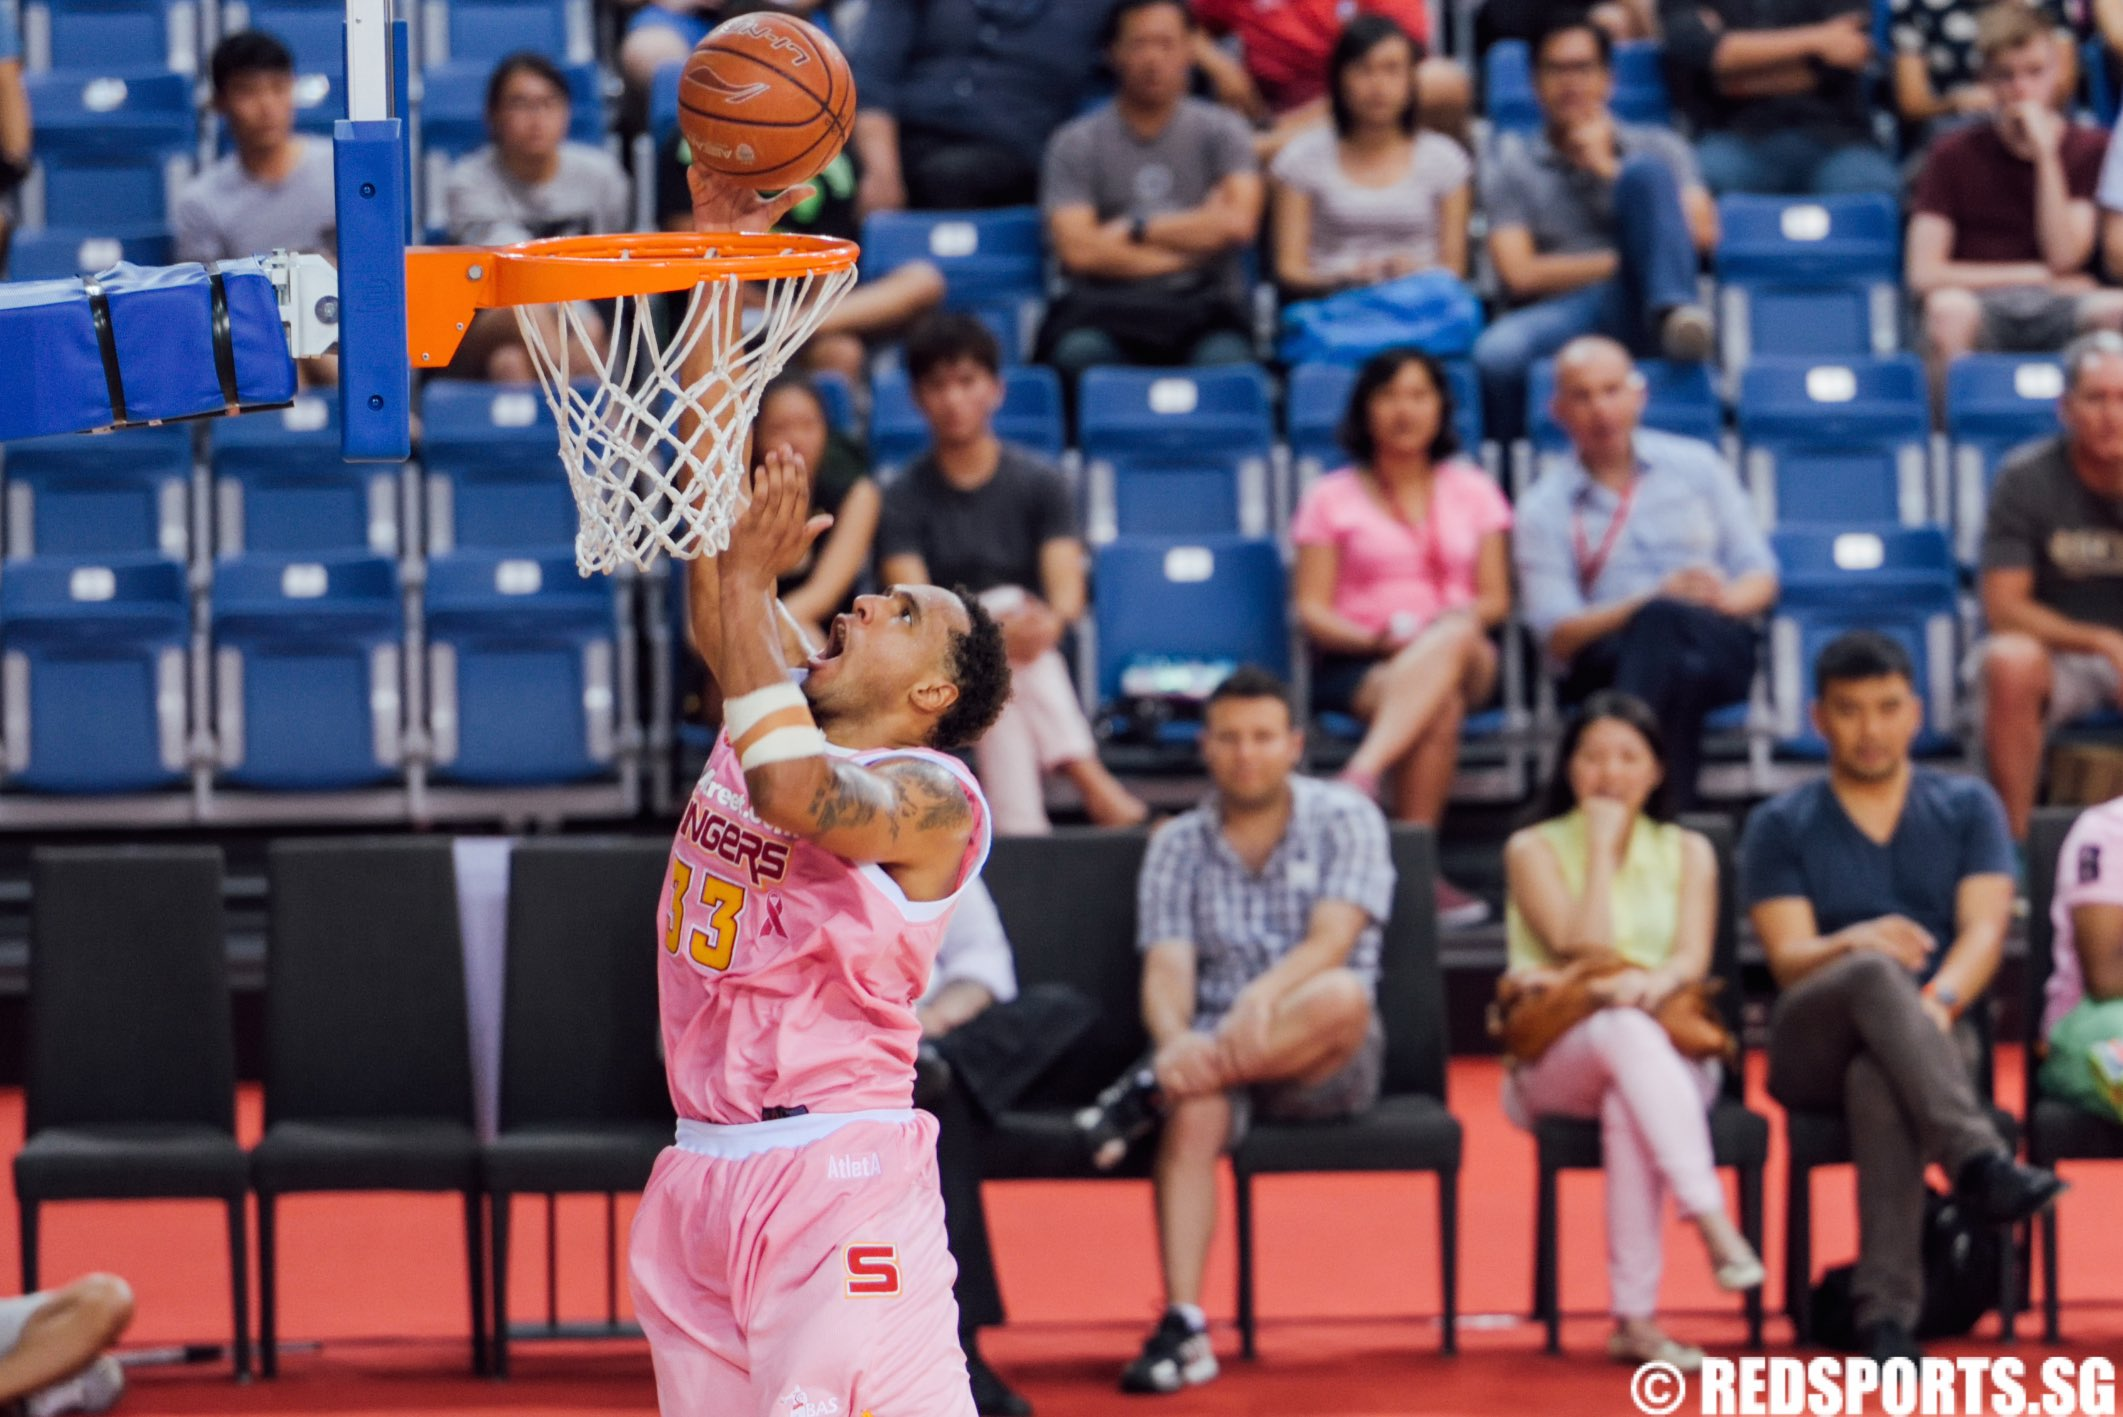 Dior Lowhorn (Slingers #33)  goes for the dunk. He finished the game with 20 points. (Photo 2 © Matthew Lau/Red Sports)